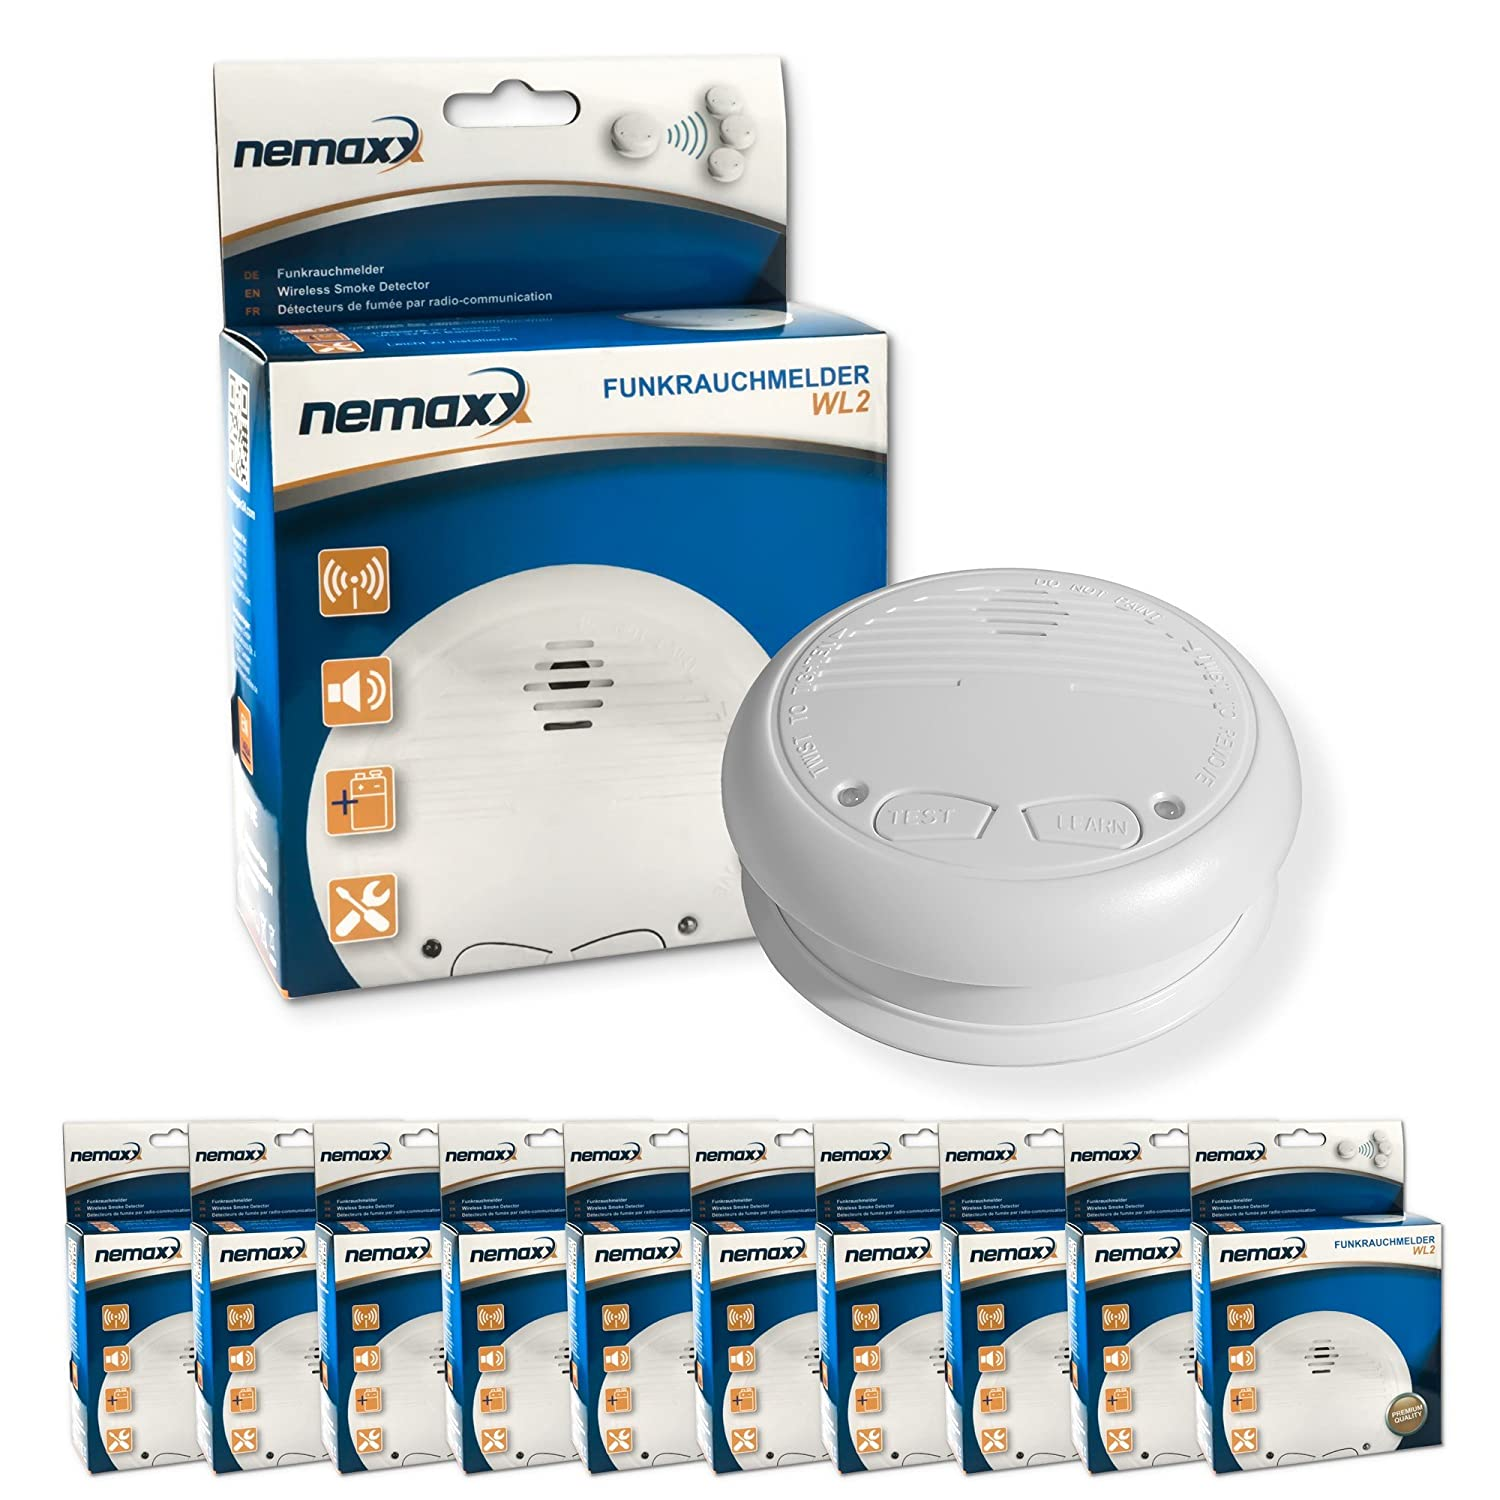 10x WL2 Wireless Smoke Detector - in accordance with EN 14604 - BUNDLE OFFER Nemaxx 10WL2